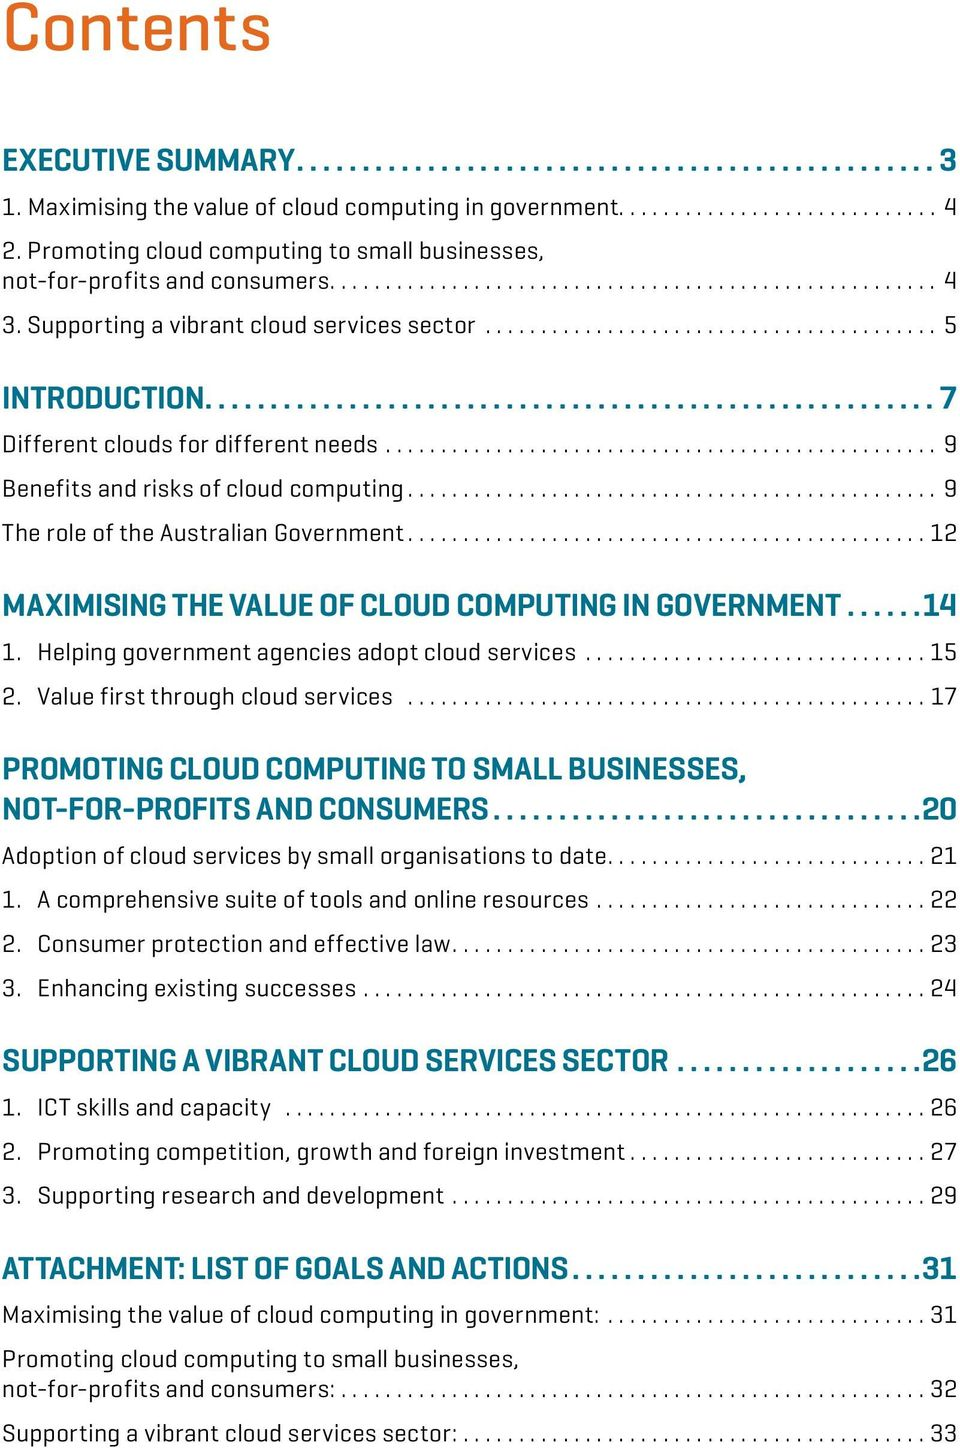 ..12 MAXIMISING THE VALUE OF CLOUD COMPUTING IN GOVERNMENT... 14 1. Helping government agencies adopt cloud services...15 2. Value first through cloud services.